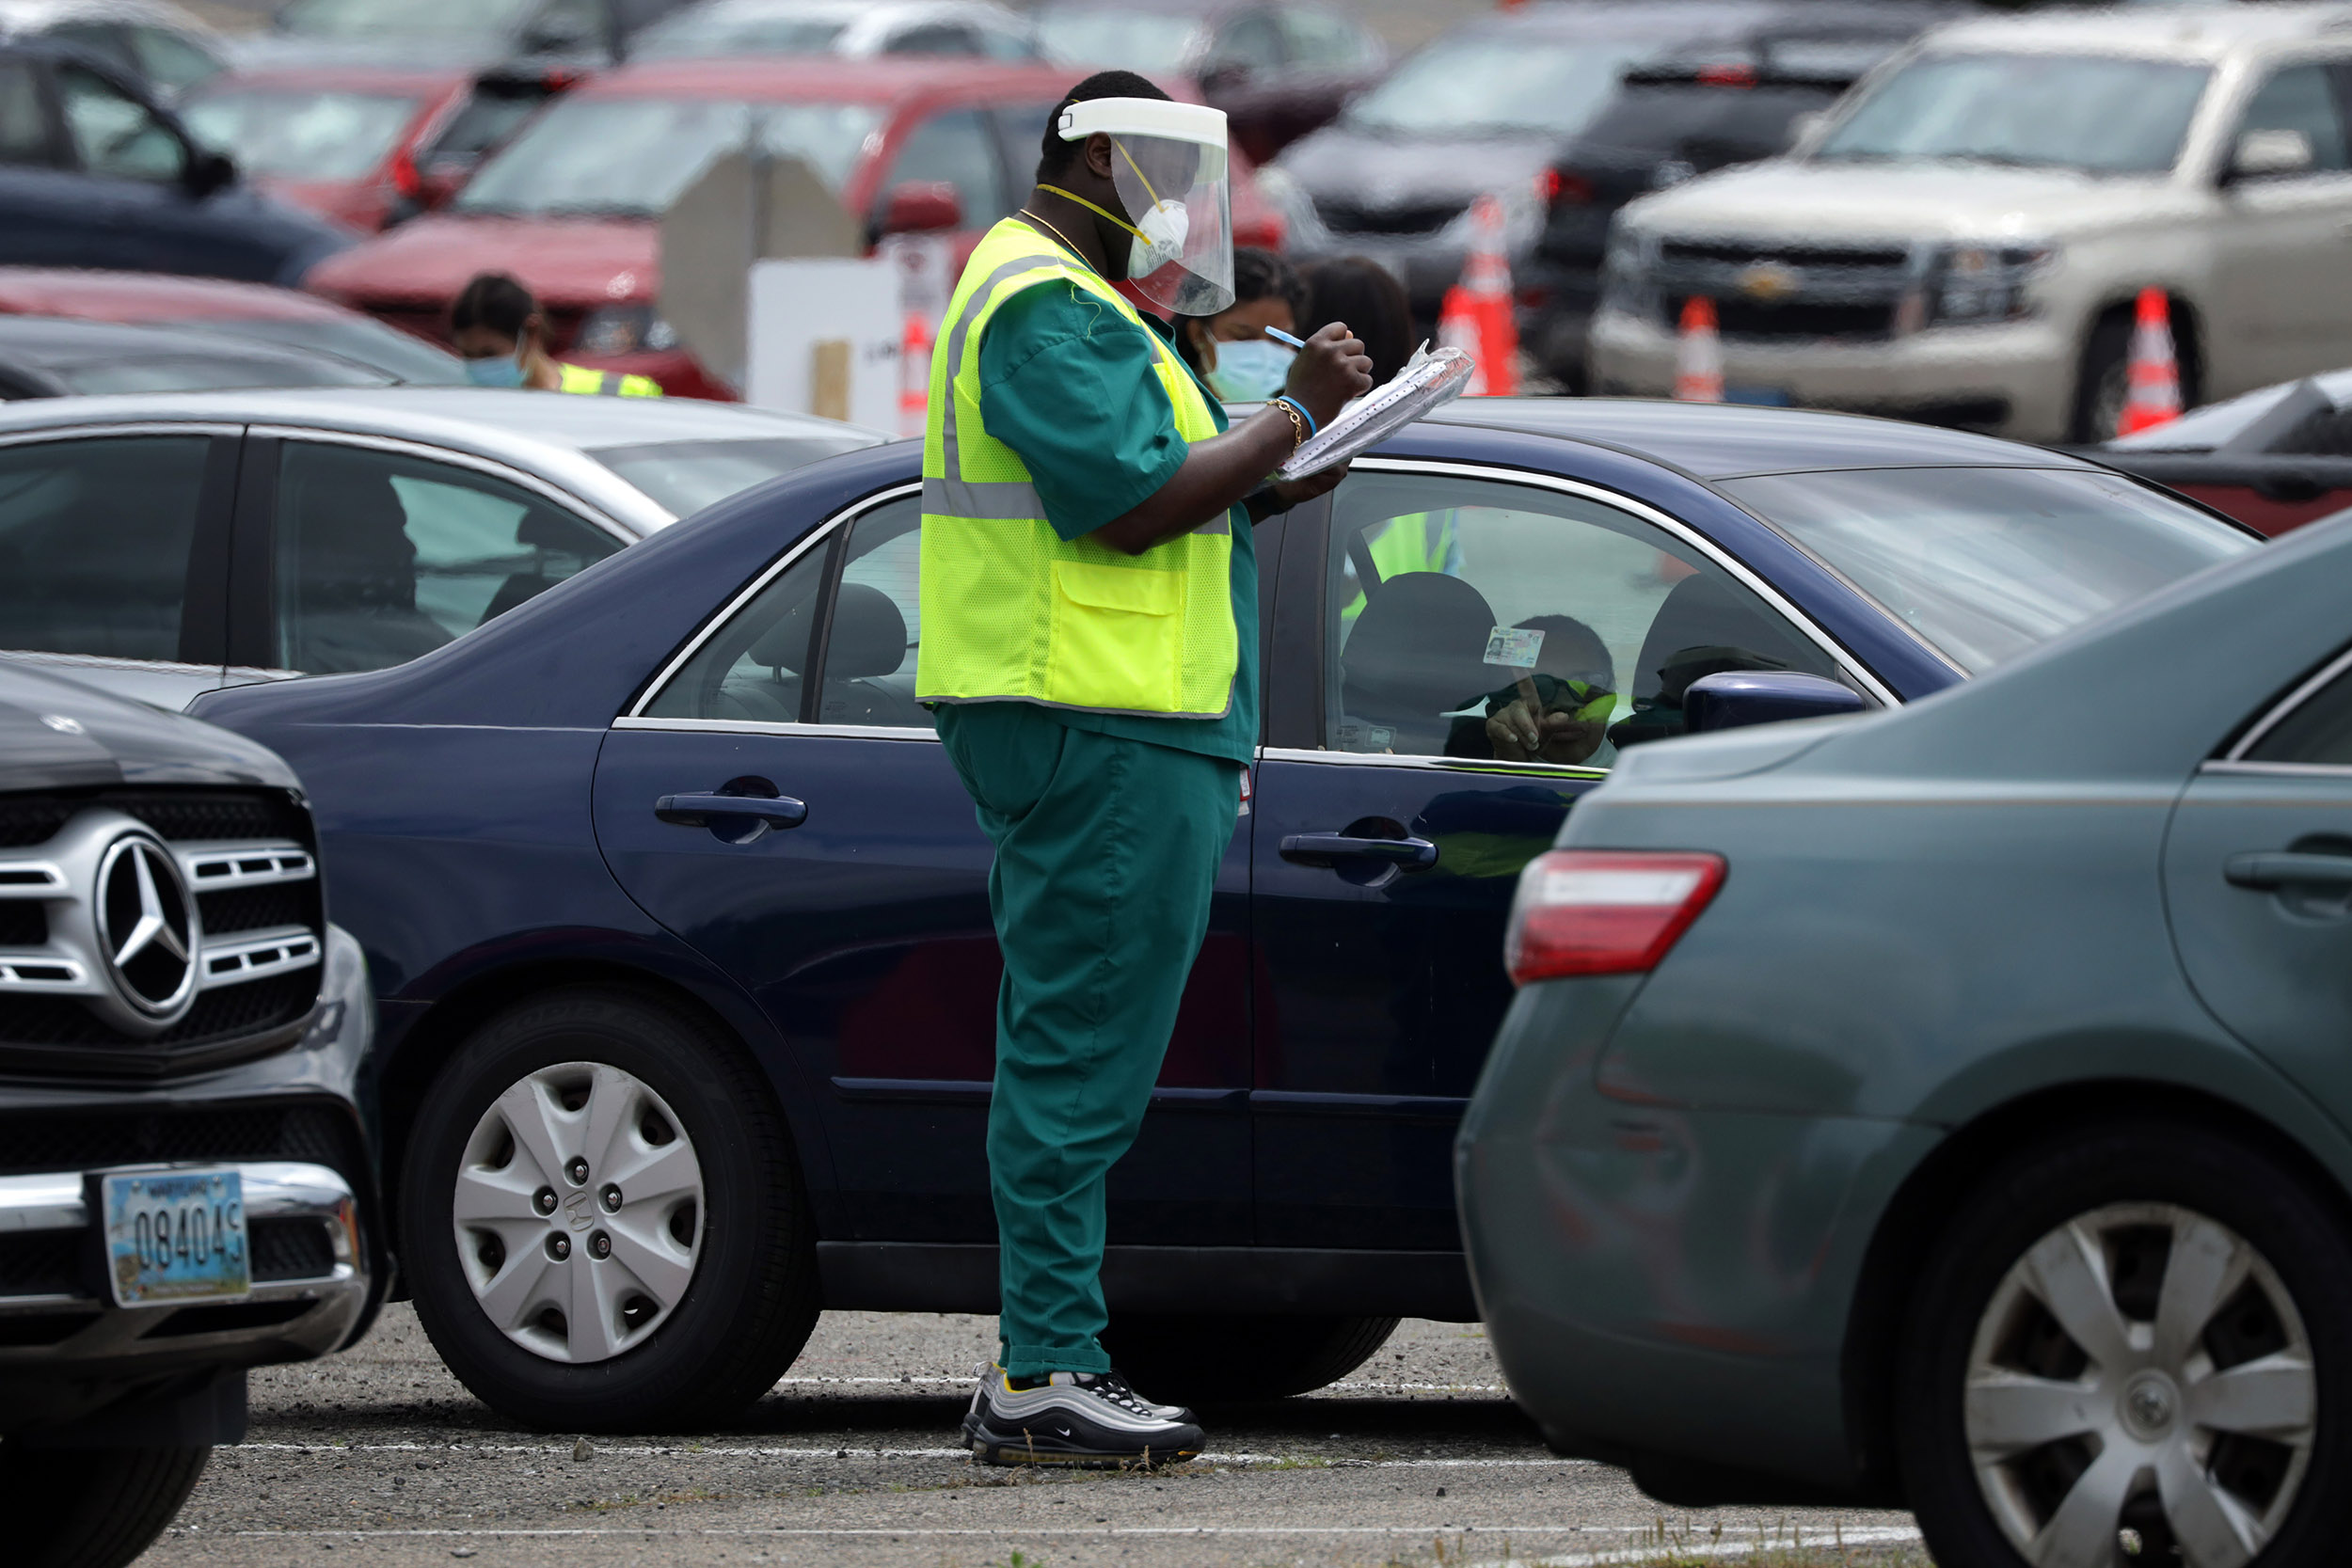 A worker collects information from local residents as he check them in at a drive-thru coronavirus testing location at Six Flags America in Bowie, Maryland, on May 29.